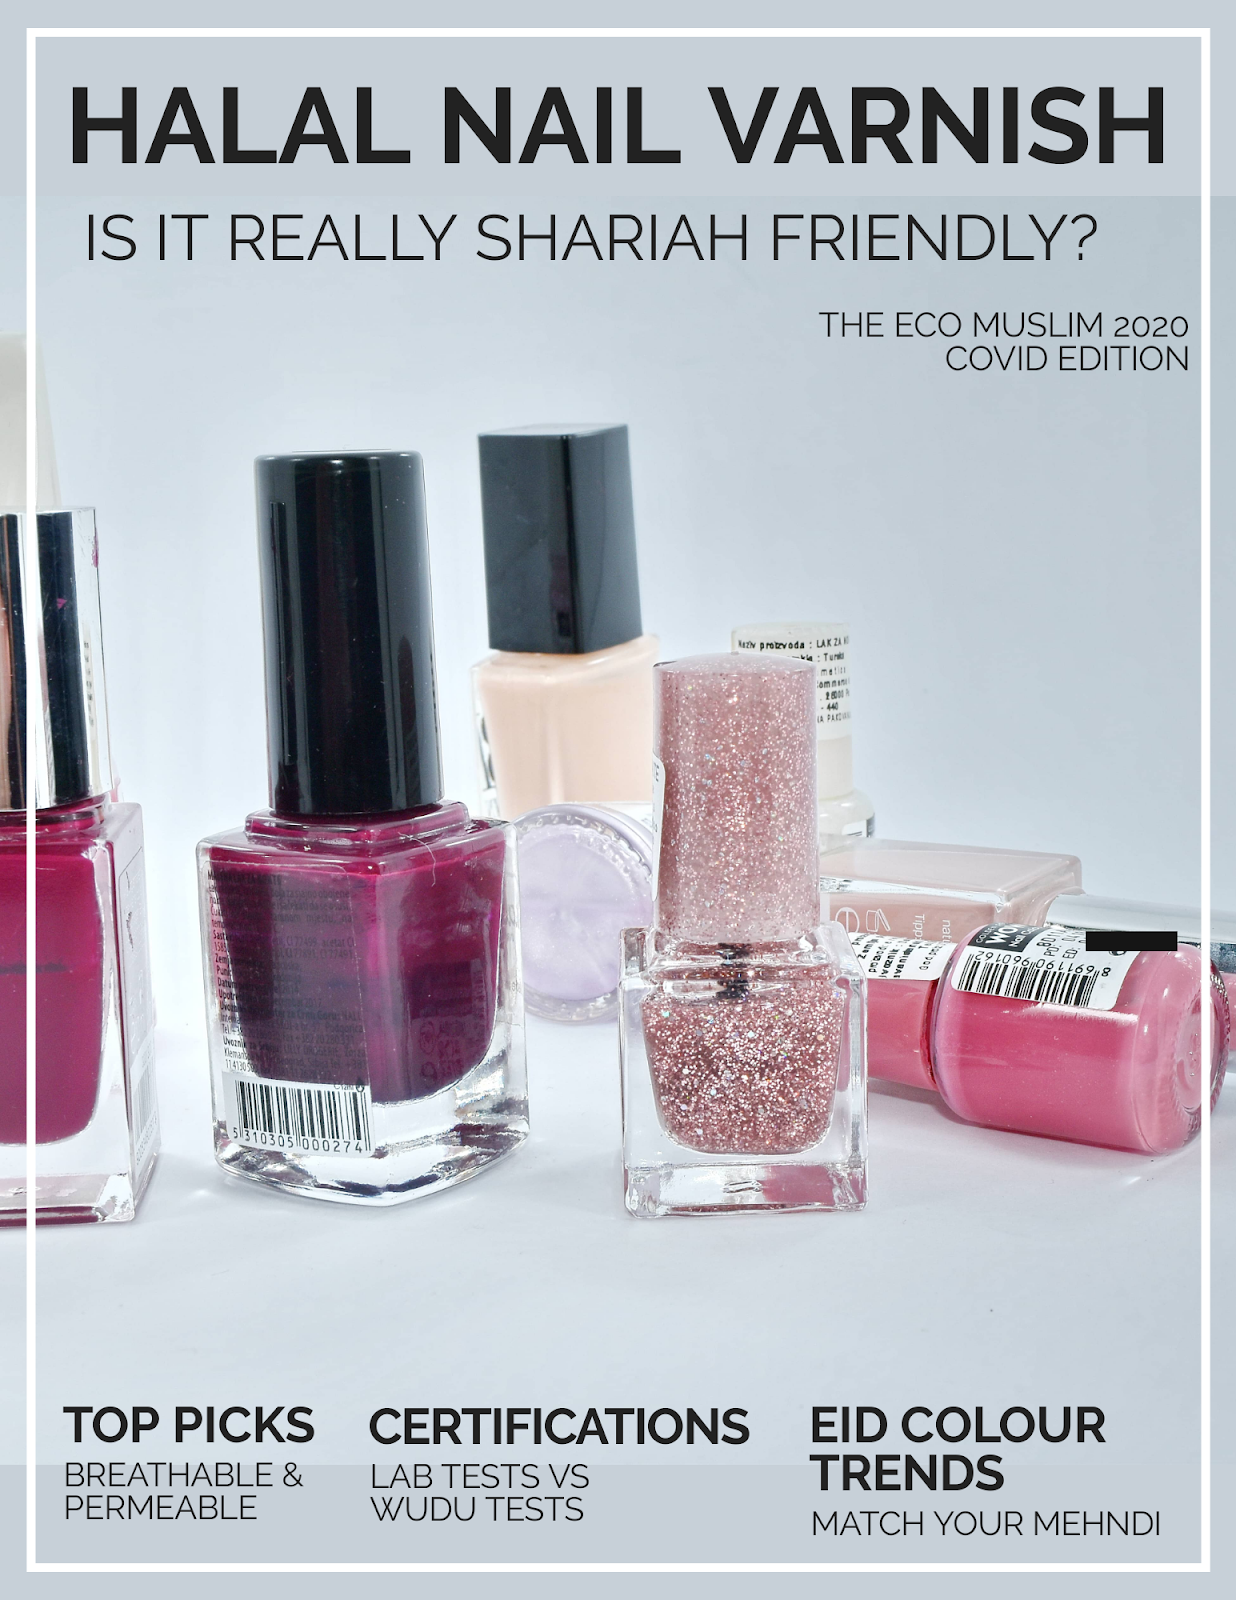 Halal Nail Varnish Testing Eid Trends And Top Picks Theecomuslim